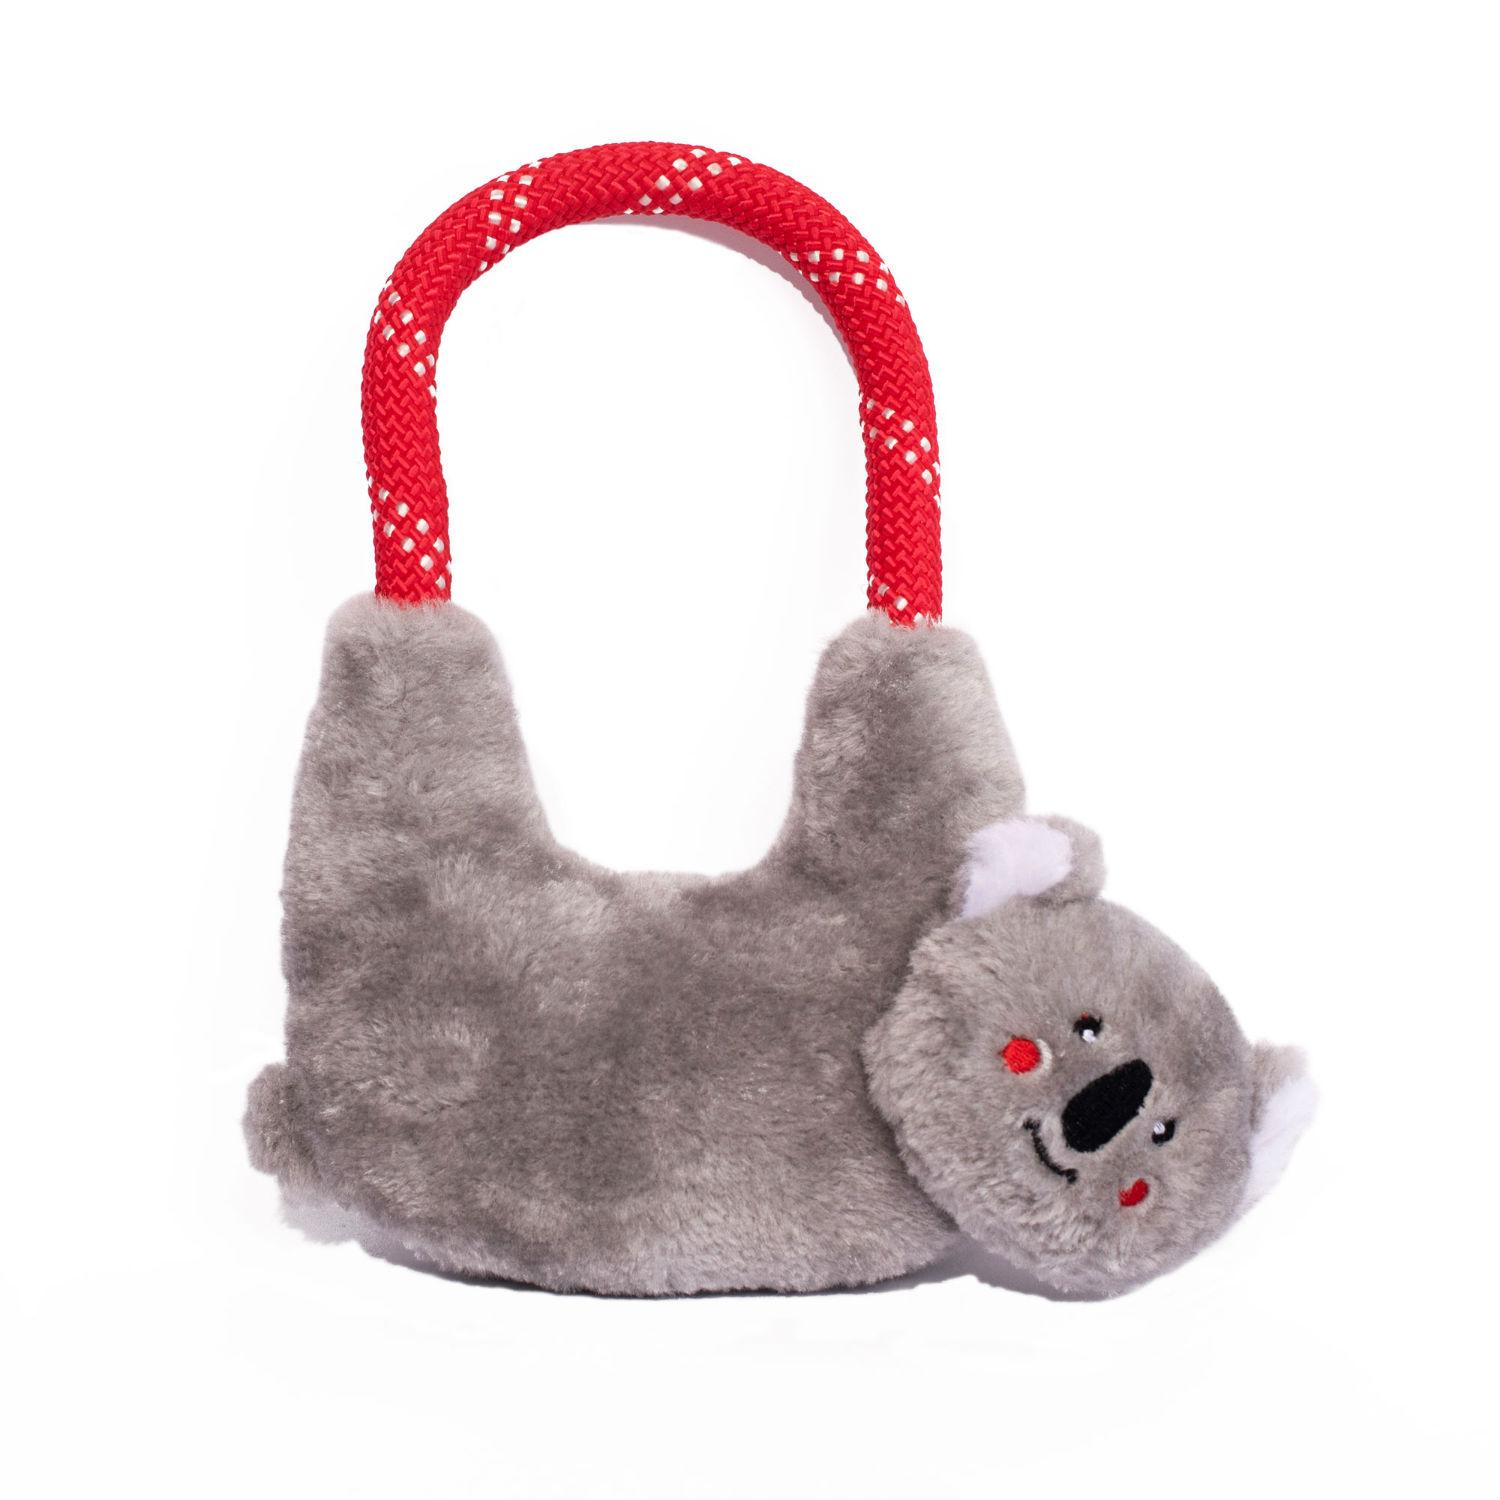 ZippyPaws Rope Hangerz  Dog Toy - Koala